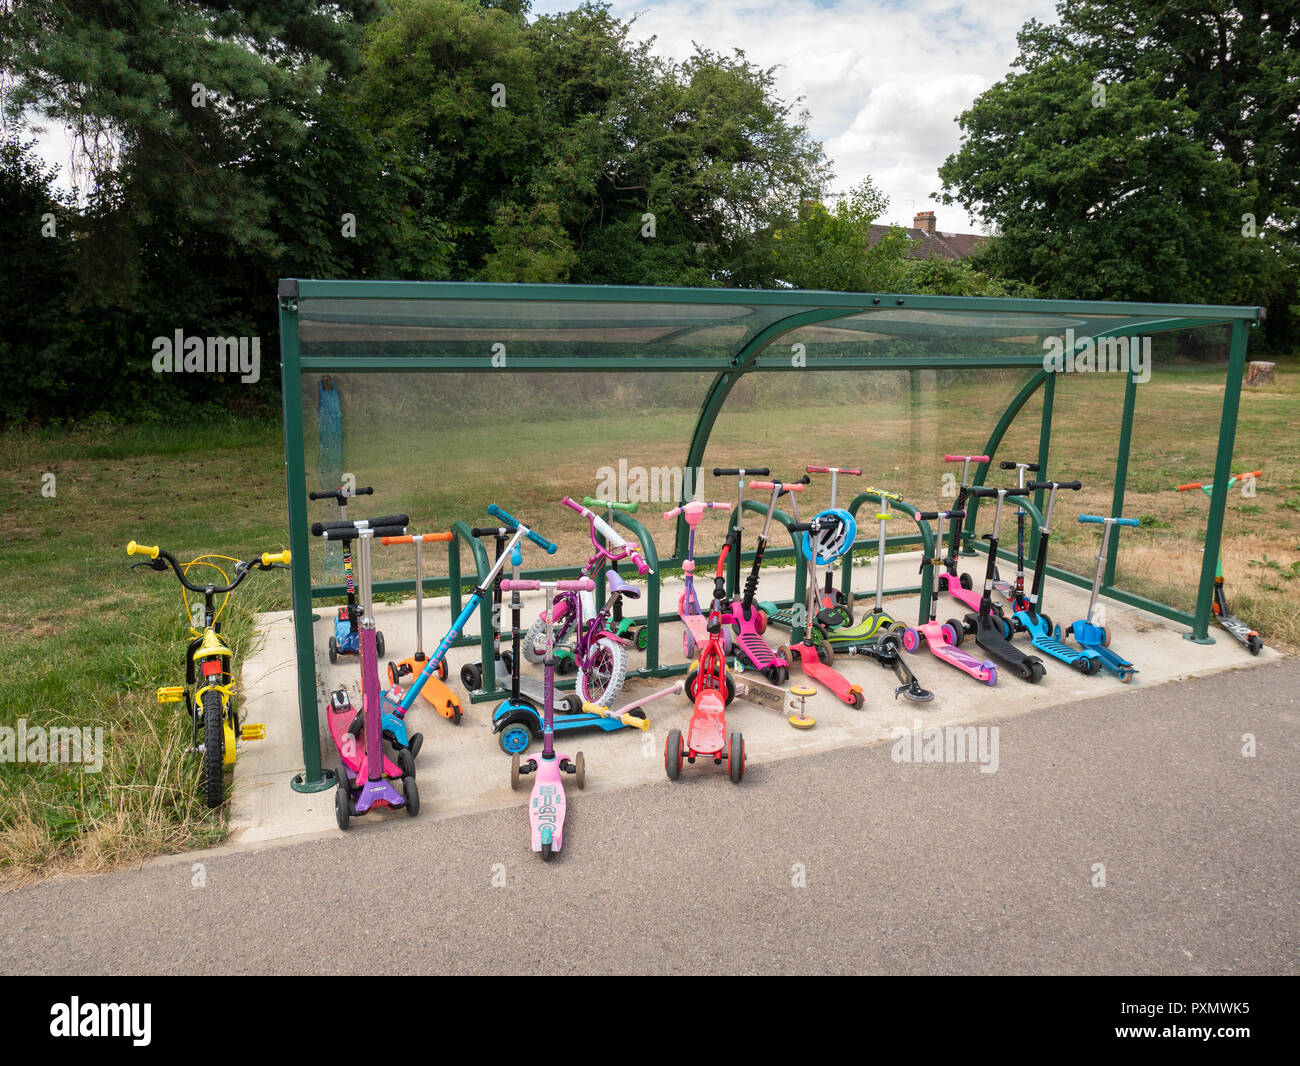 Children's scooters parked up at Worcesters Primary School, Enfield, UK, London - Stock Image